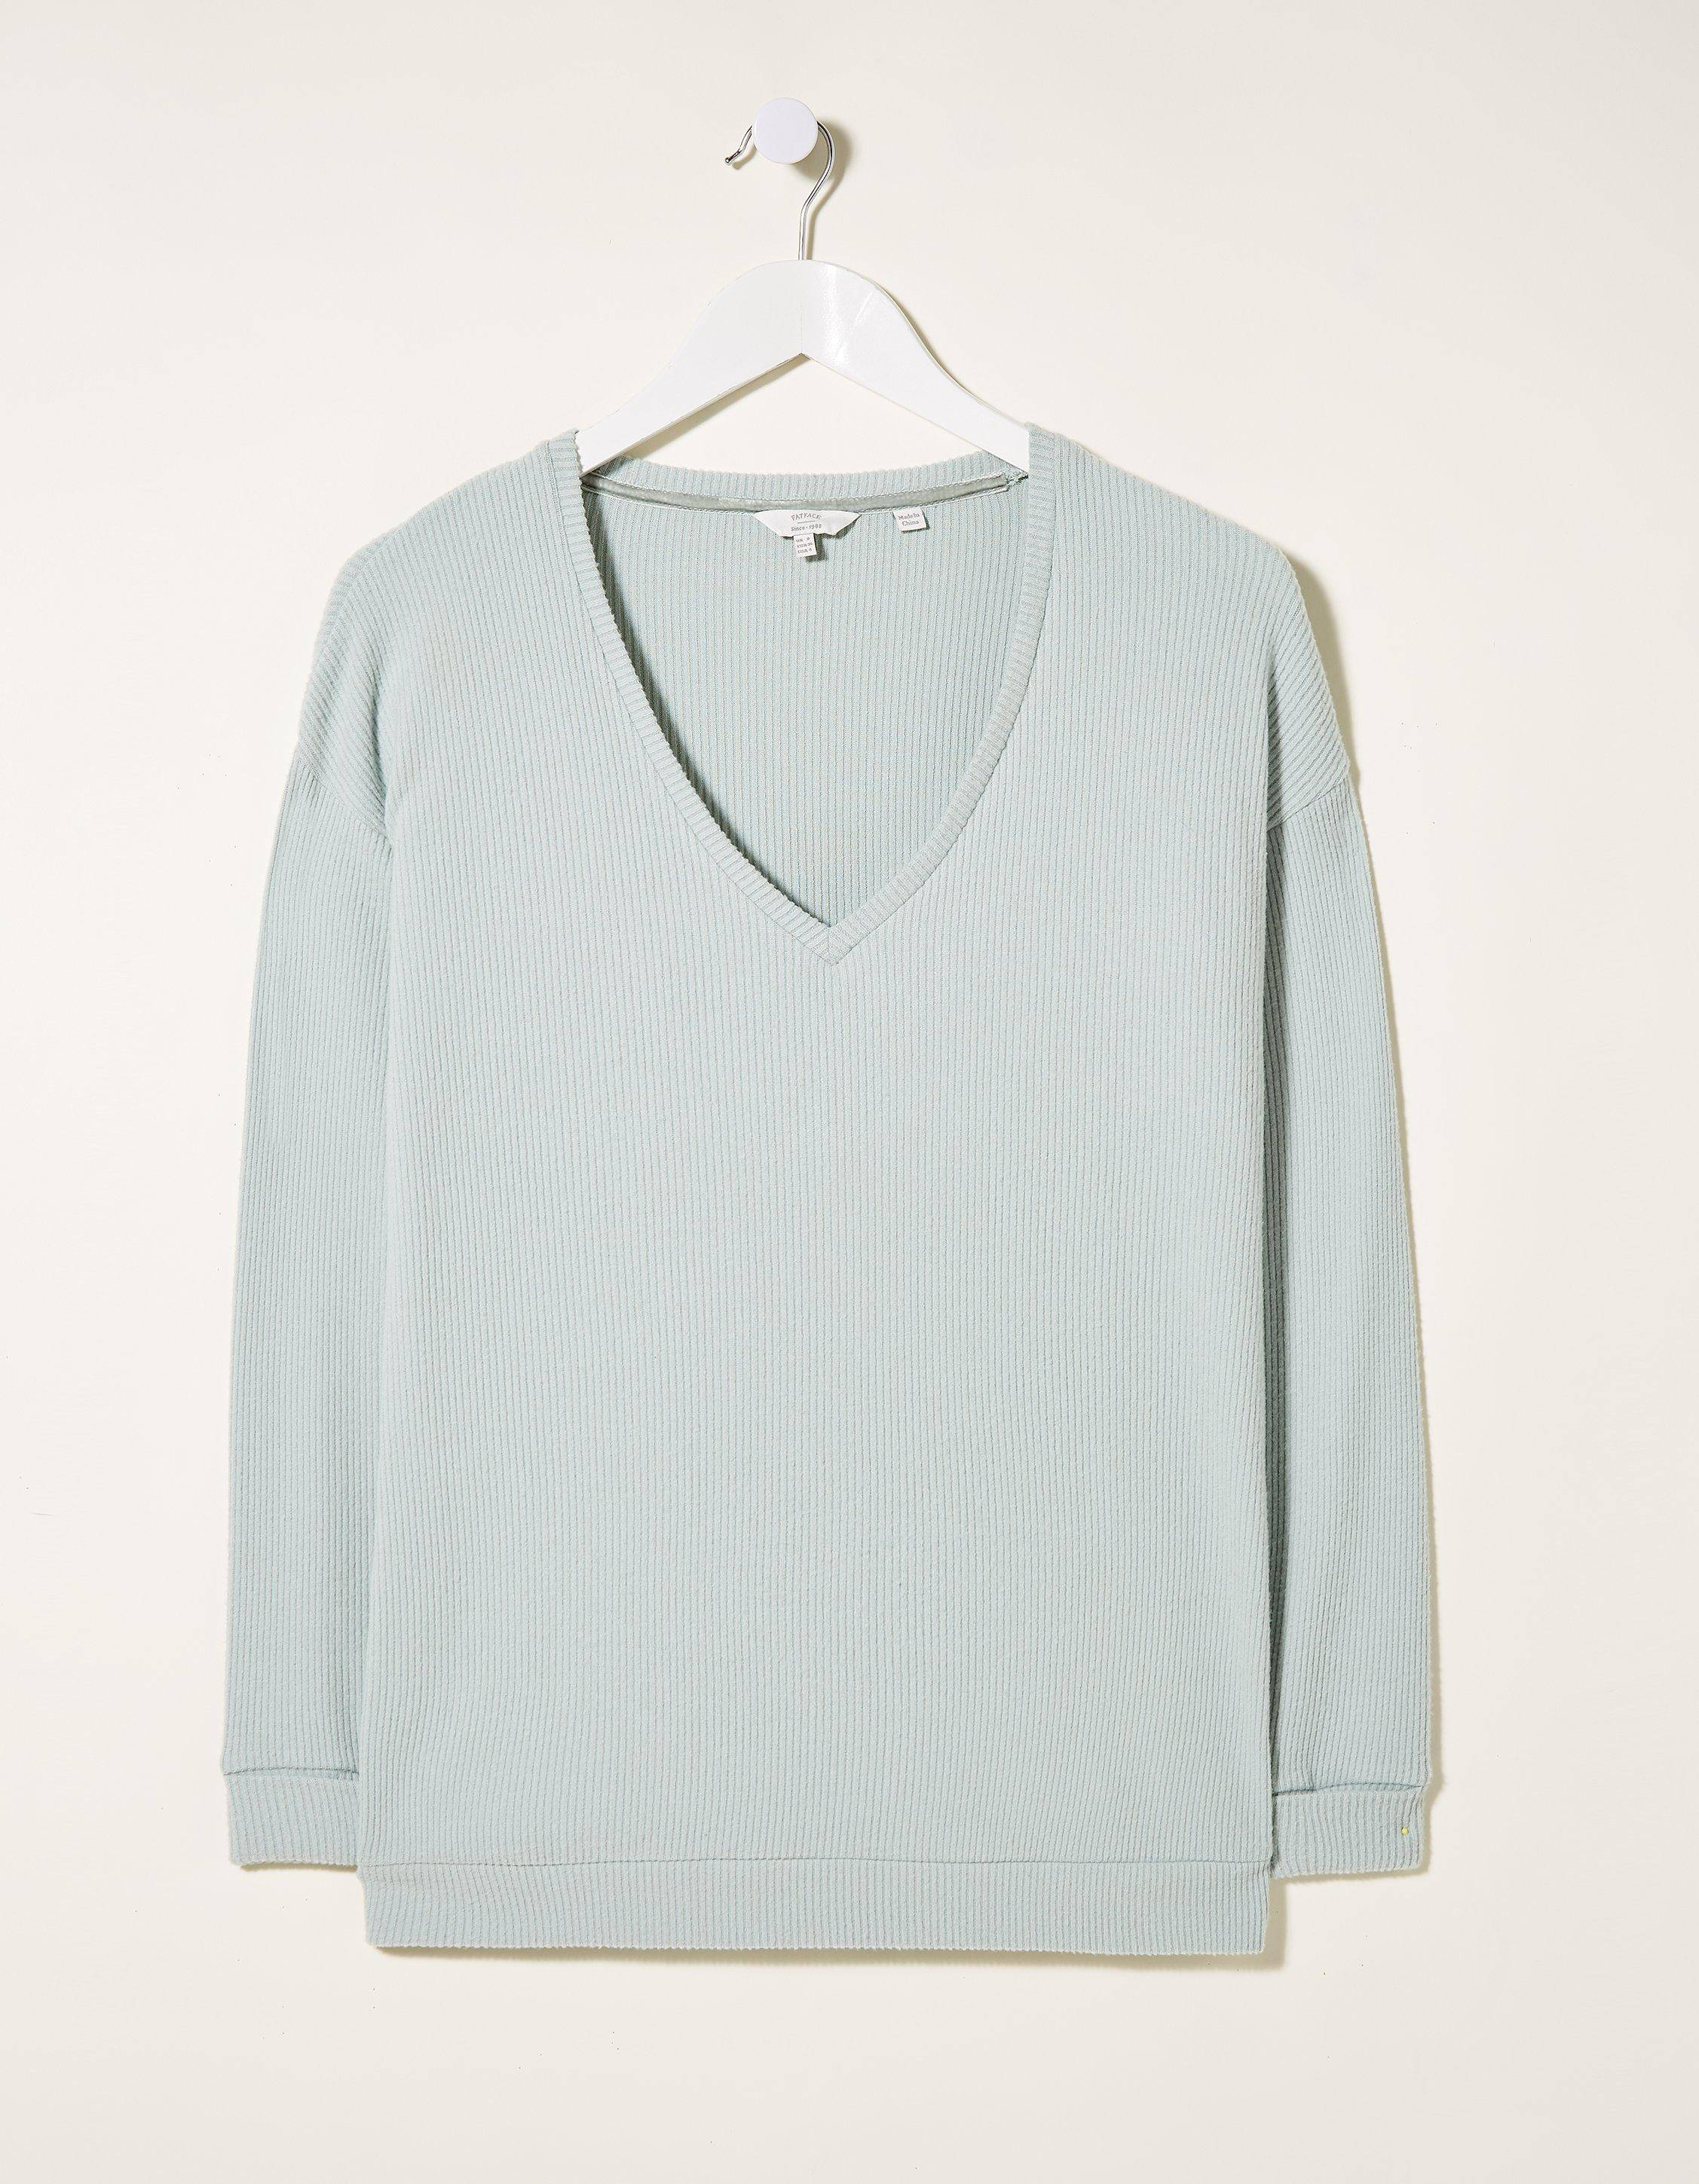 Fat Face Supersoft V Neck Rib Top  - Size: 12